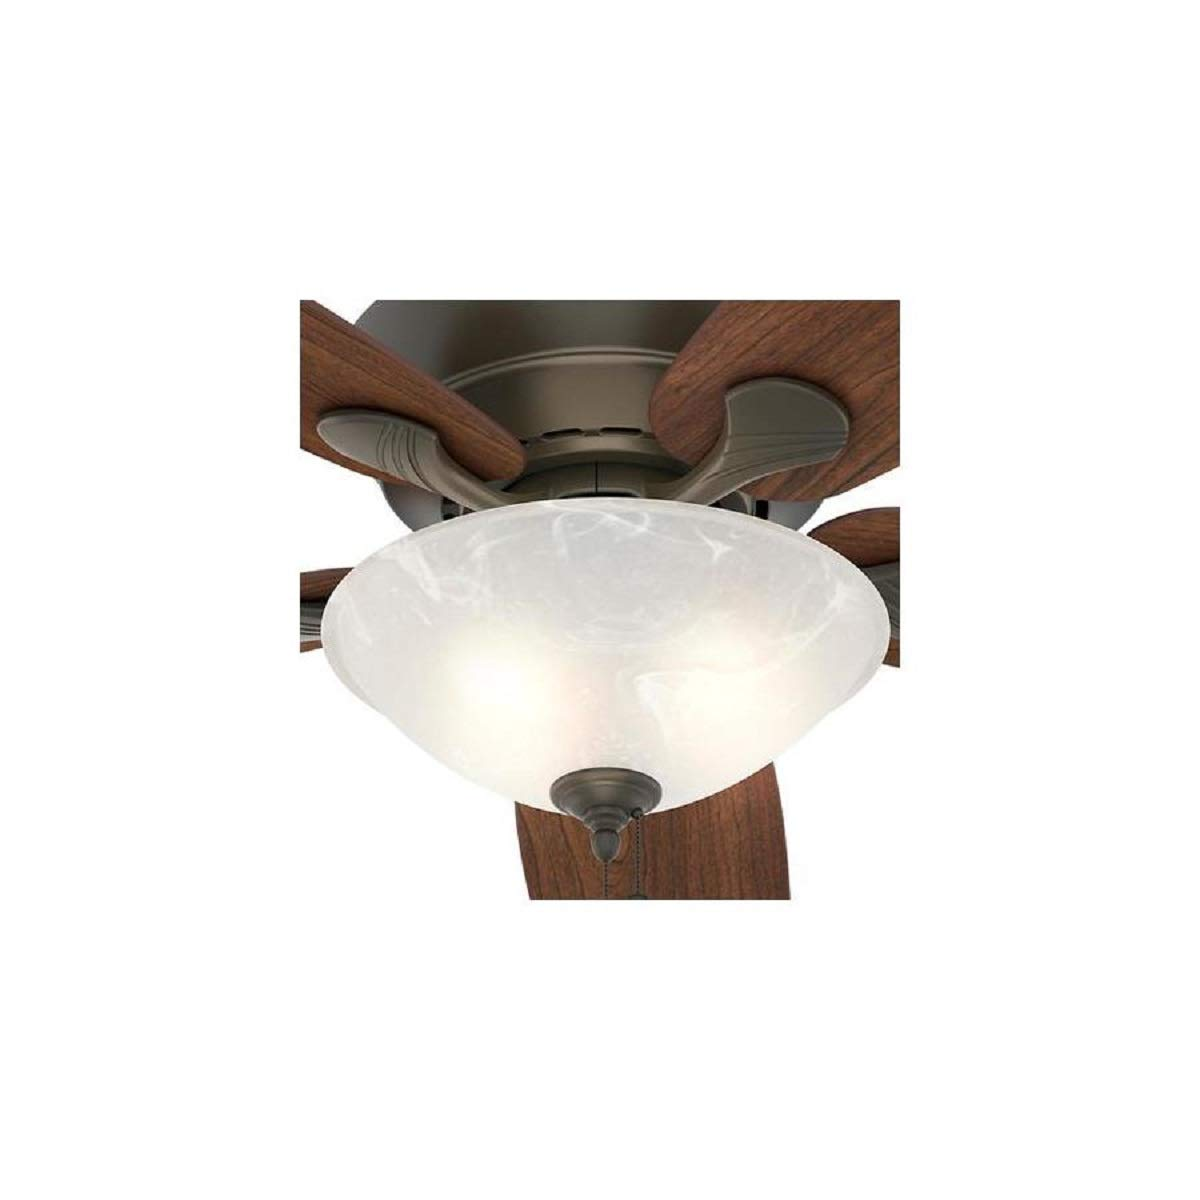 Hunter 60 Regalia New Bronze Ceiling Fan With Light Combo Power Enters At Switch Box One Wall